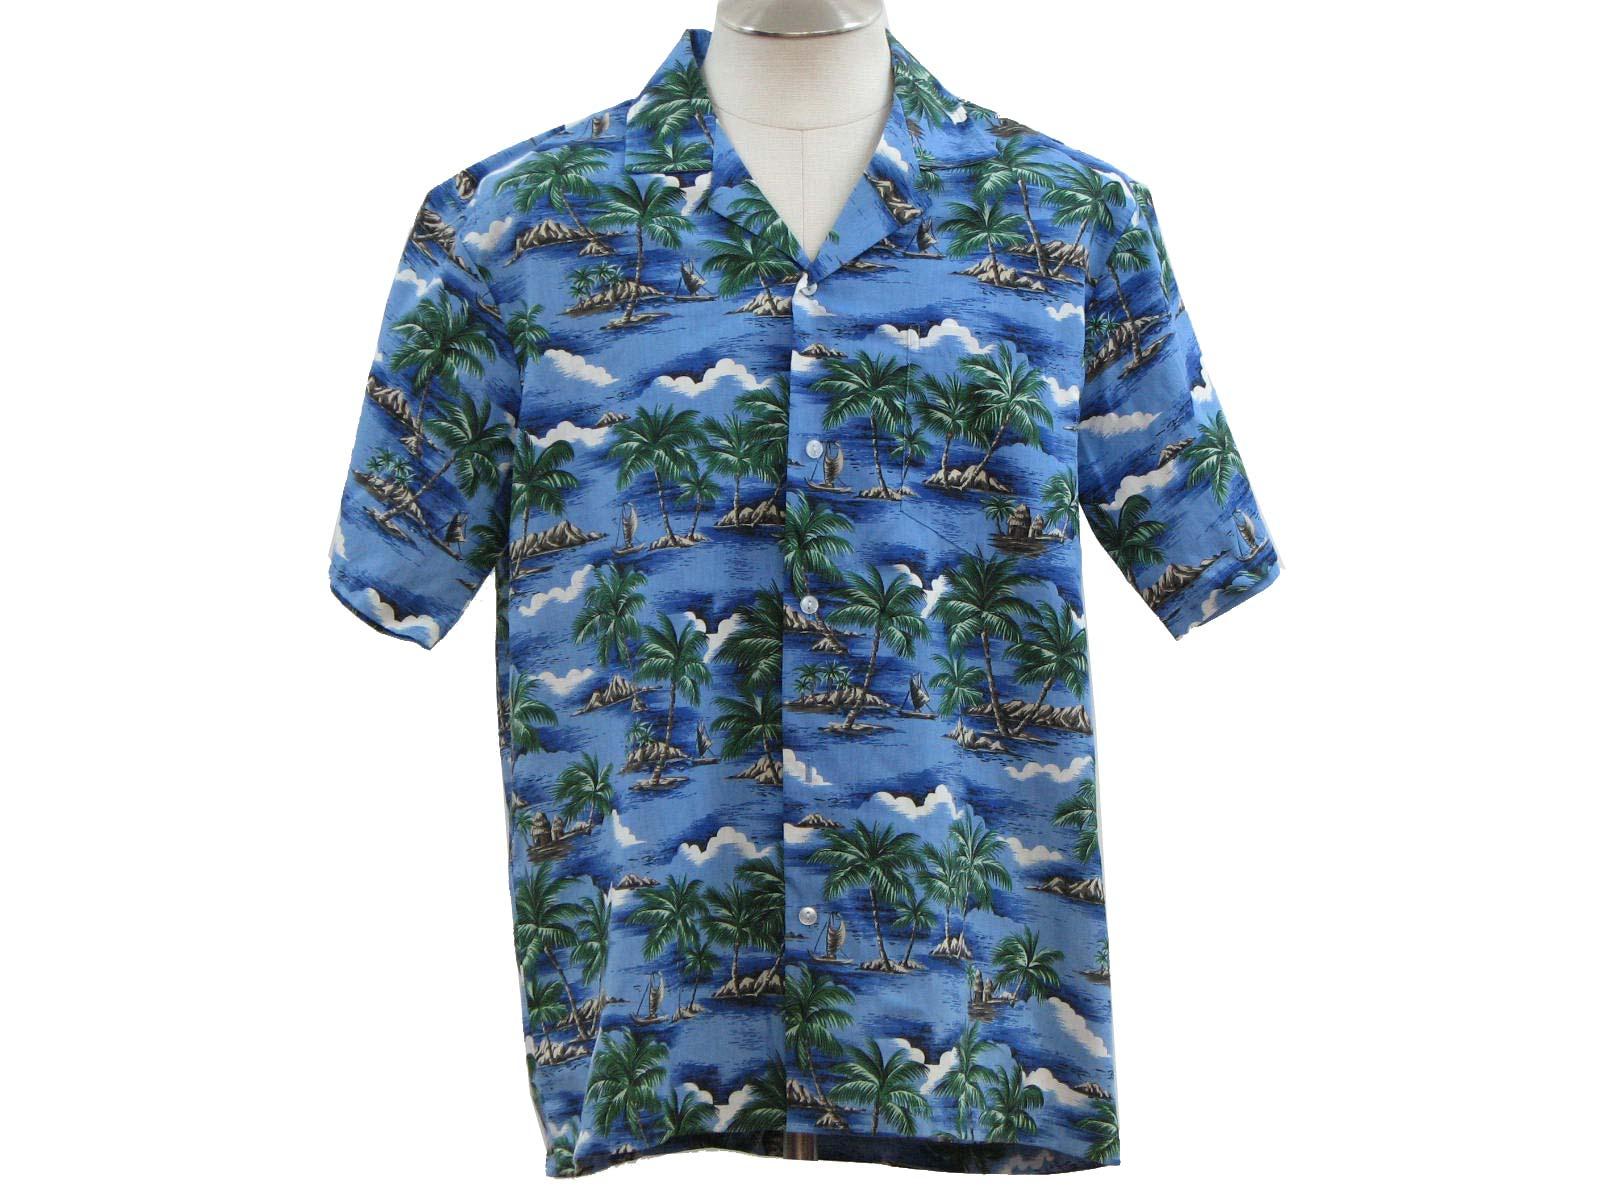 Mens shades of blue, green, taupe, beige, black and white cotton and polyester short sleeve hawaiian shirt. water, mountains, palm trees and huts print with left chest pocket, fold over collar and button front closure.